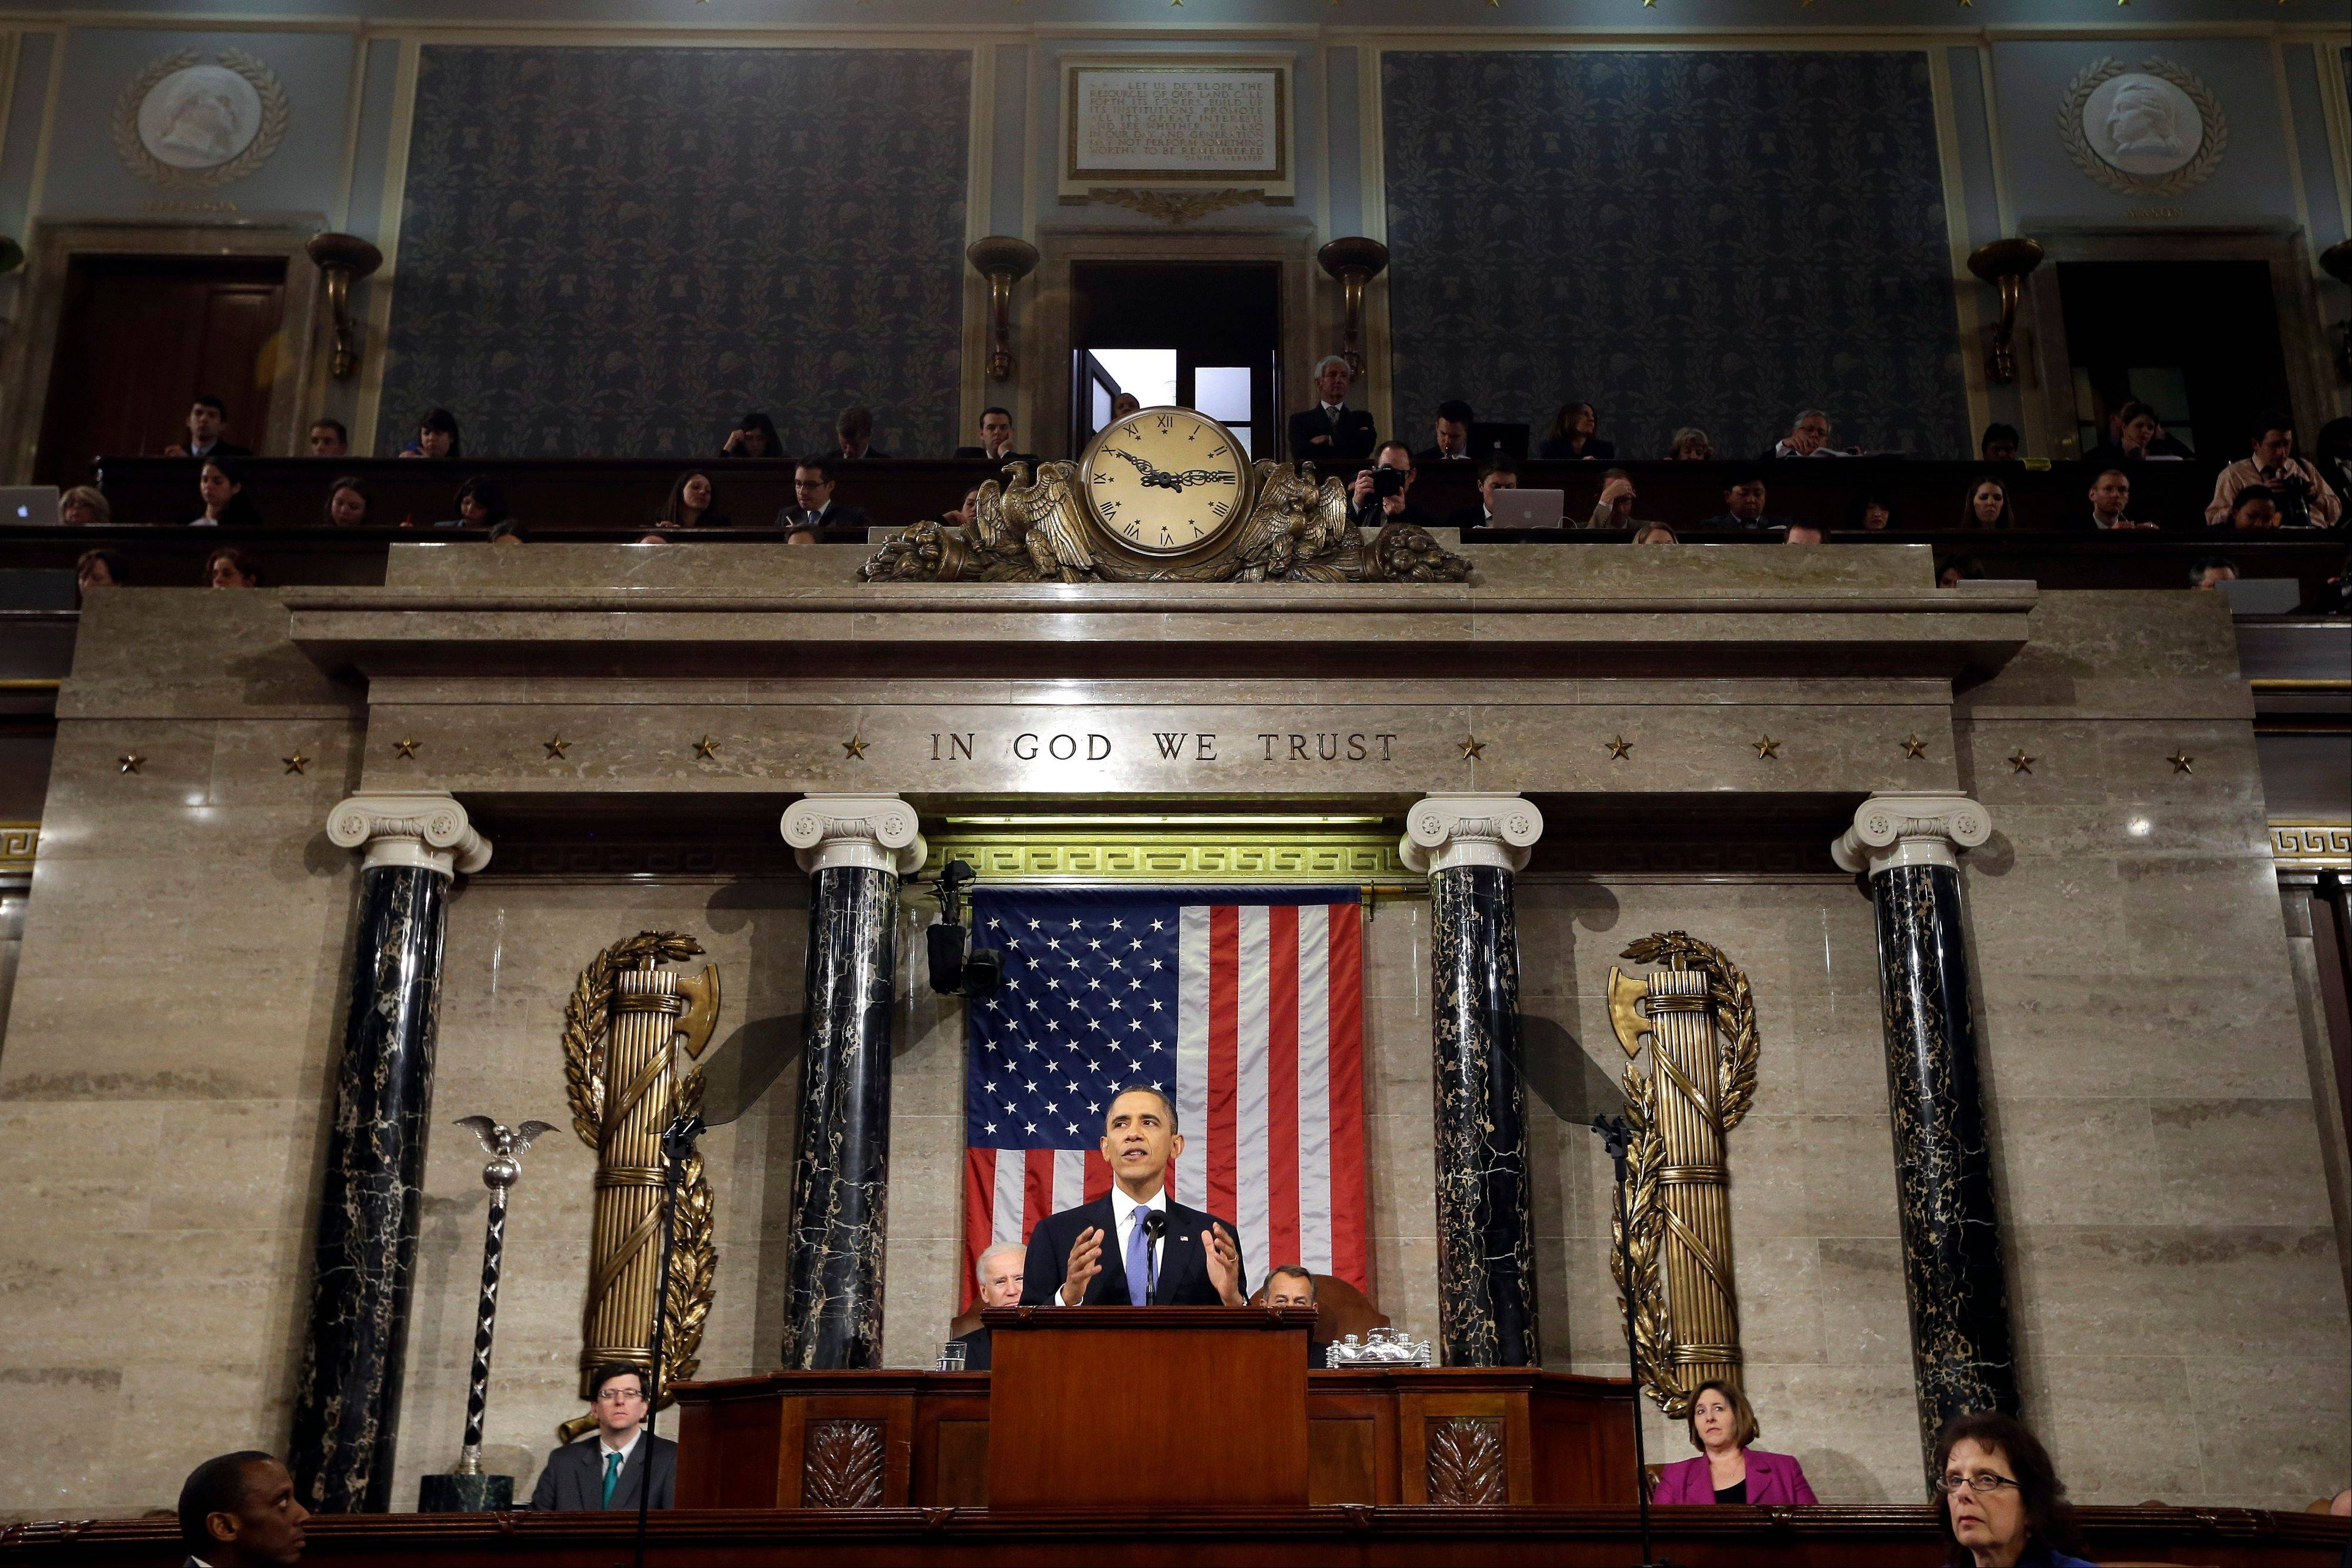 President Barack Obama gives his State of the Union address during a joint session of Congress on Capitol Hill in Washington.